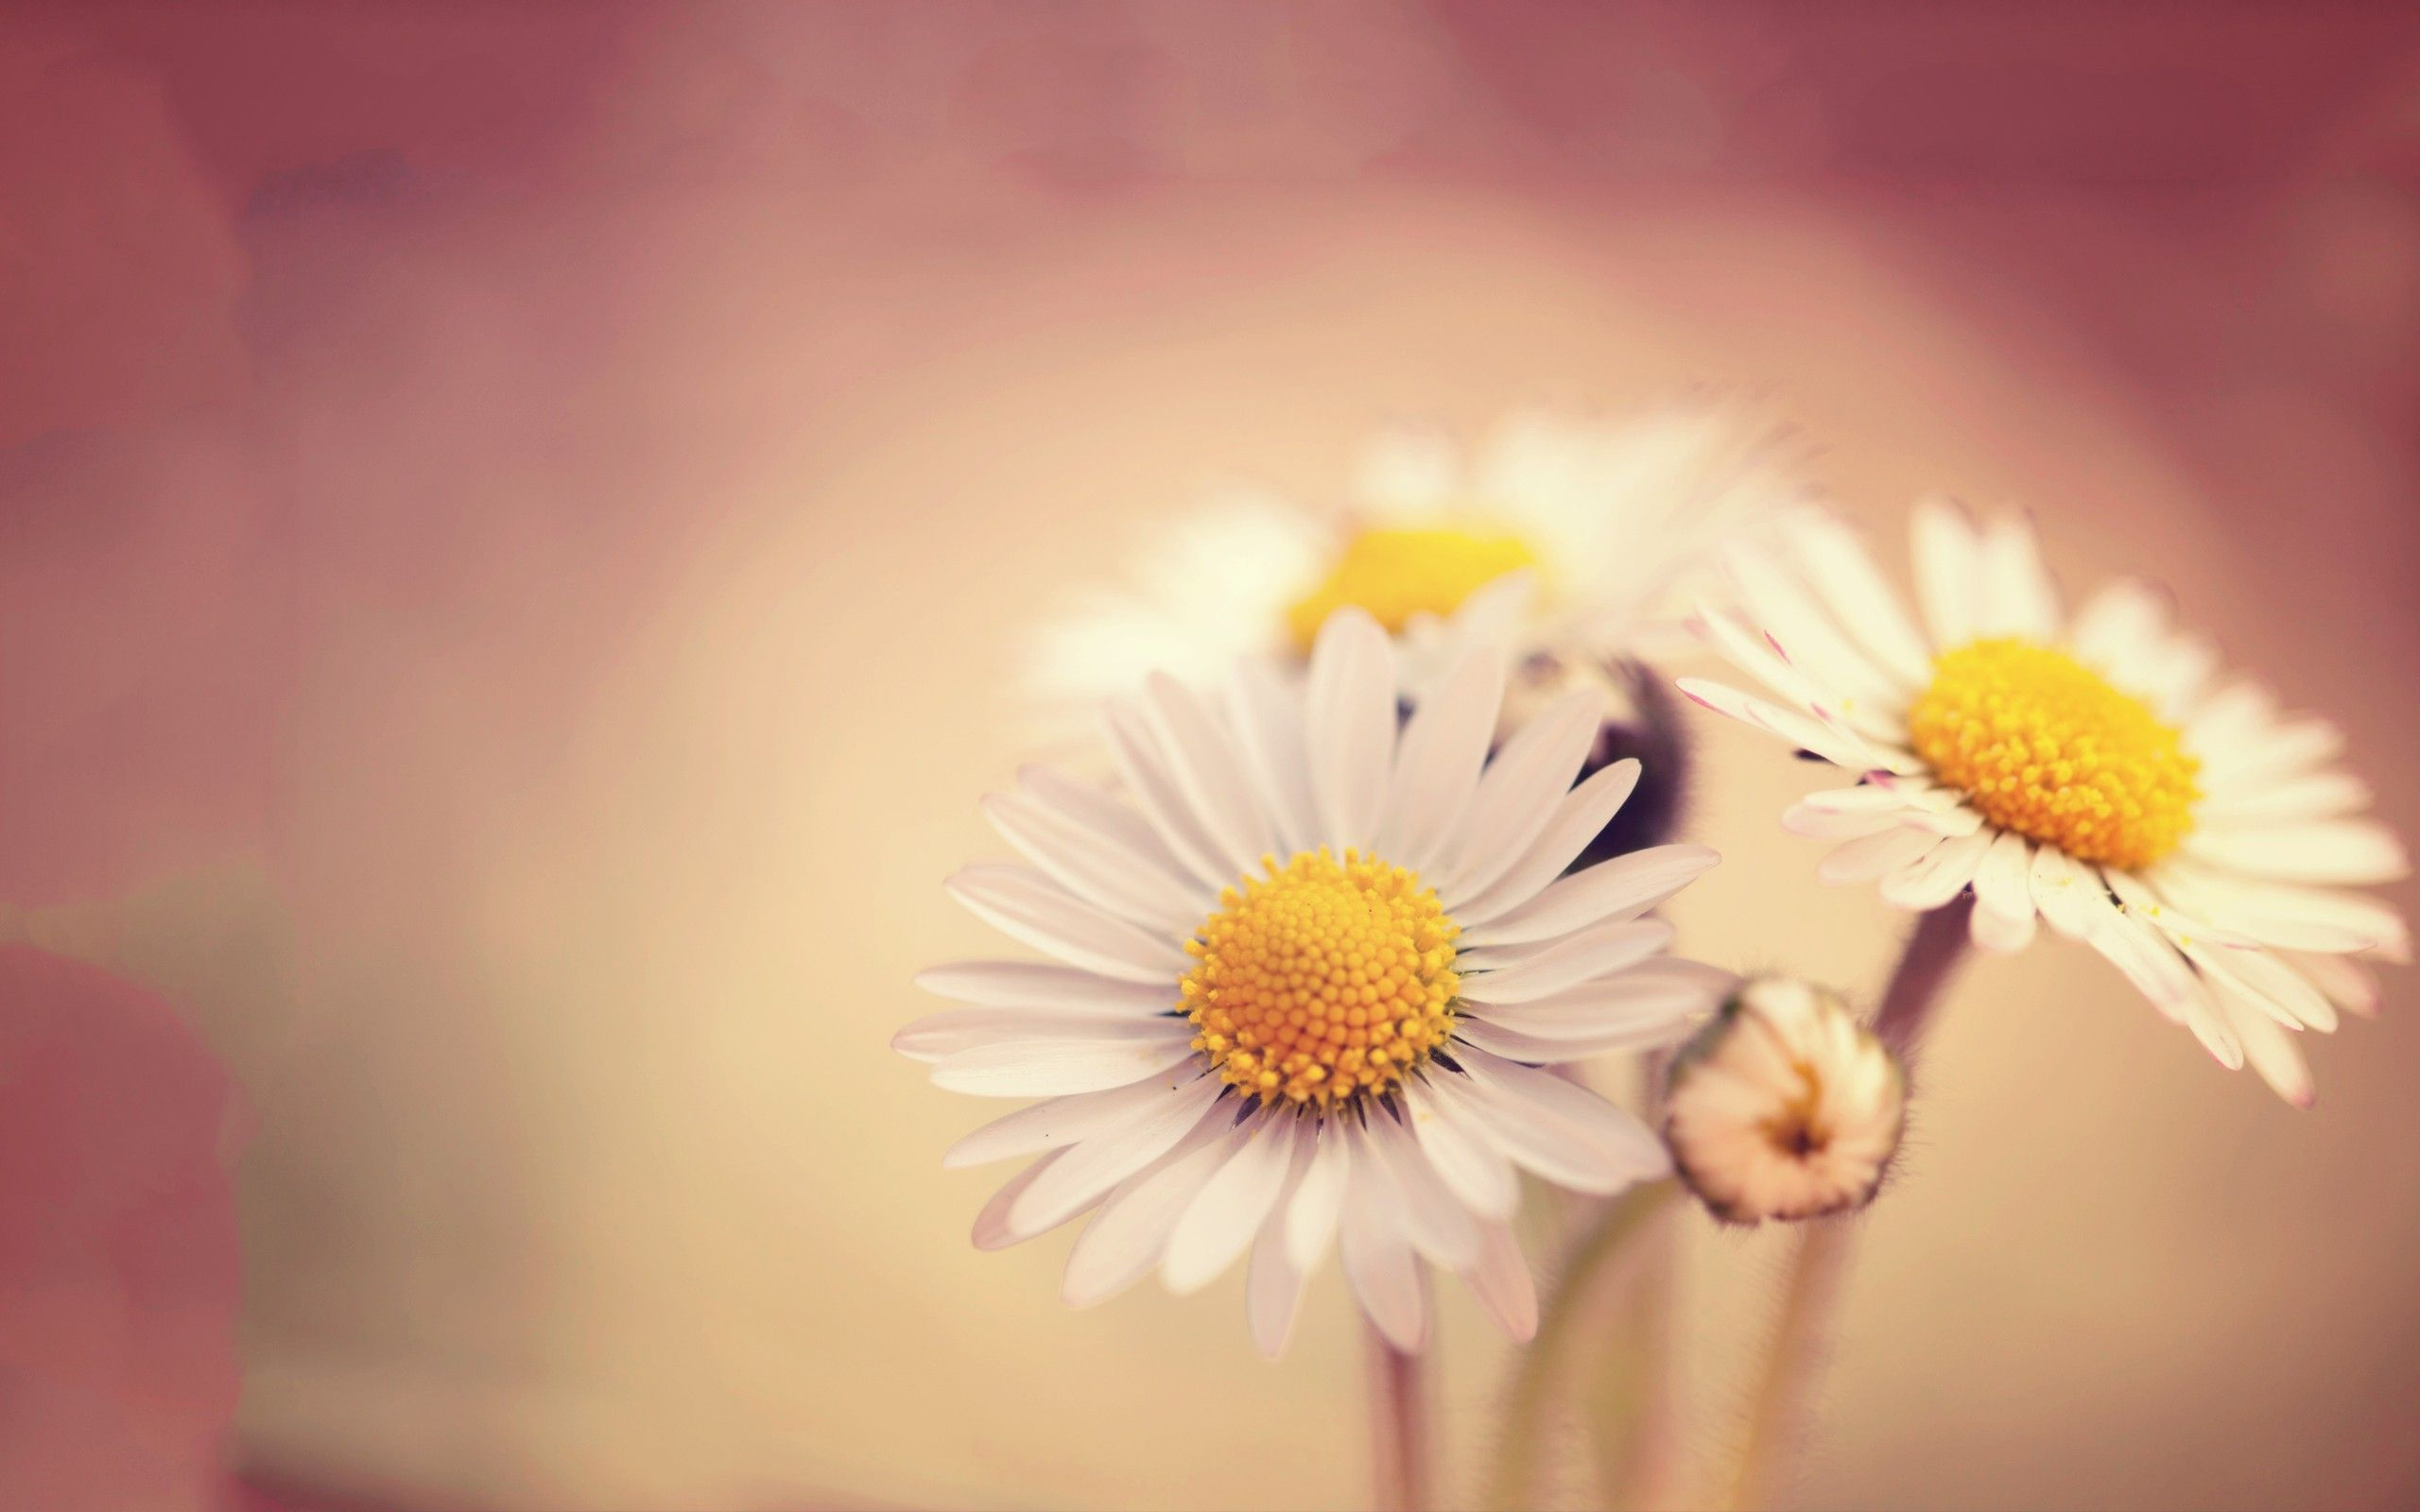 Wallpapers hindi, yellow, love, oxeye daisy, poetry